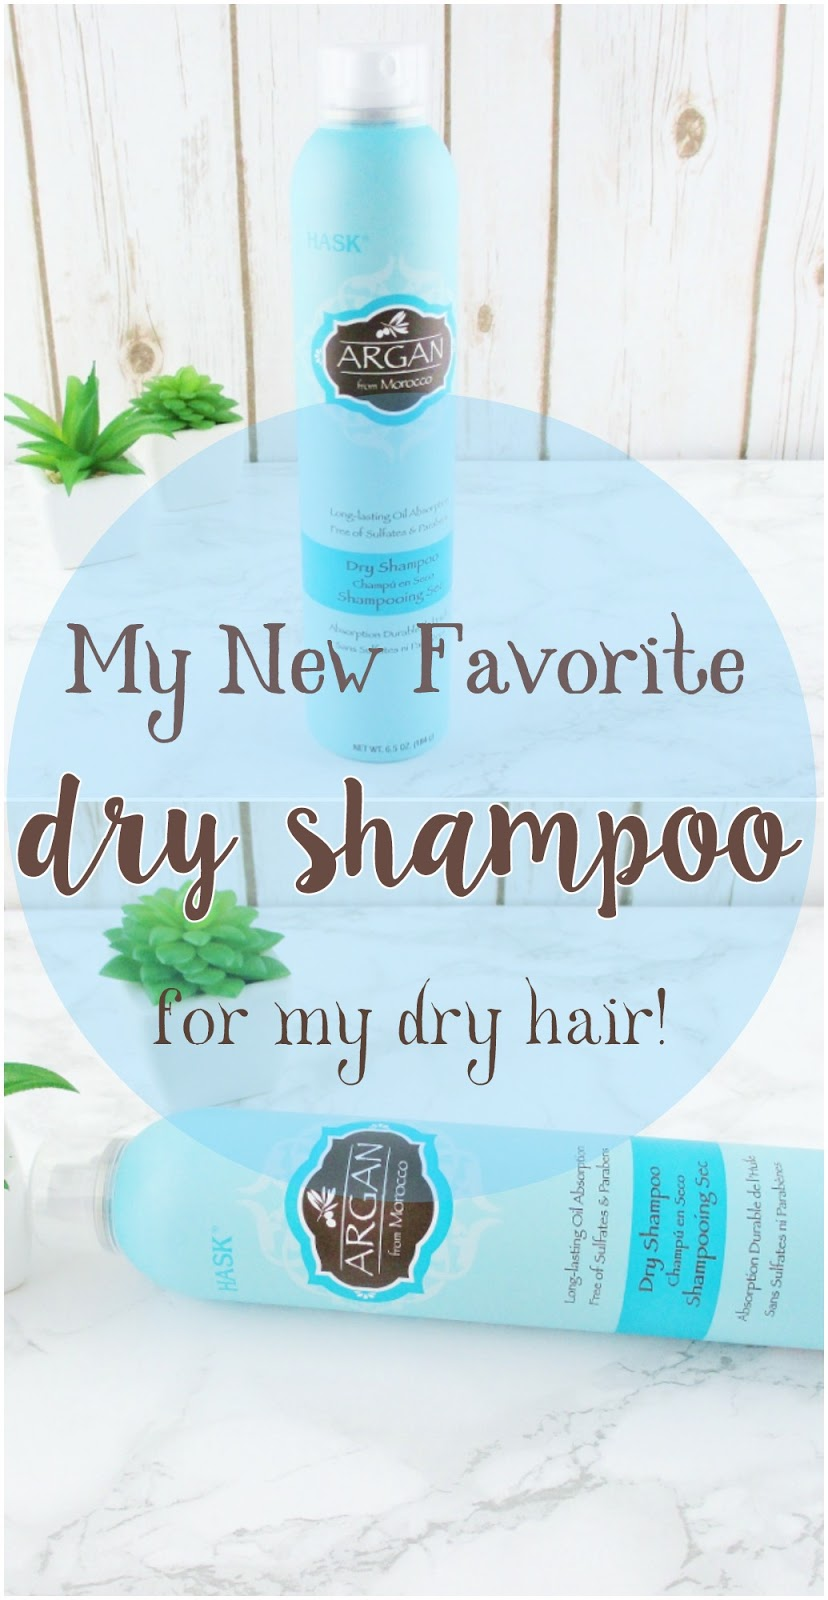 hask-argan-dry-shampoo-review